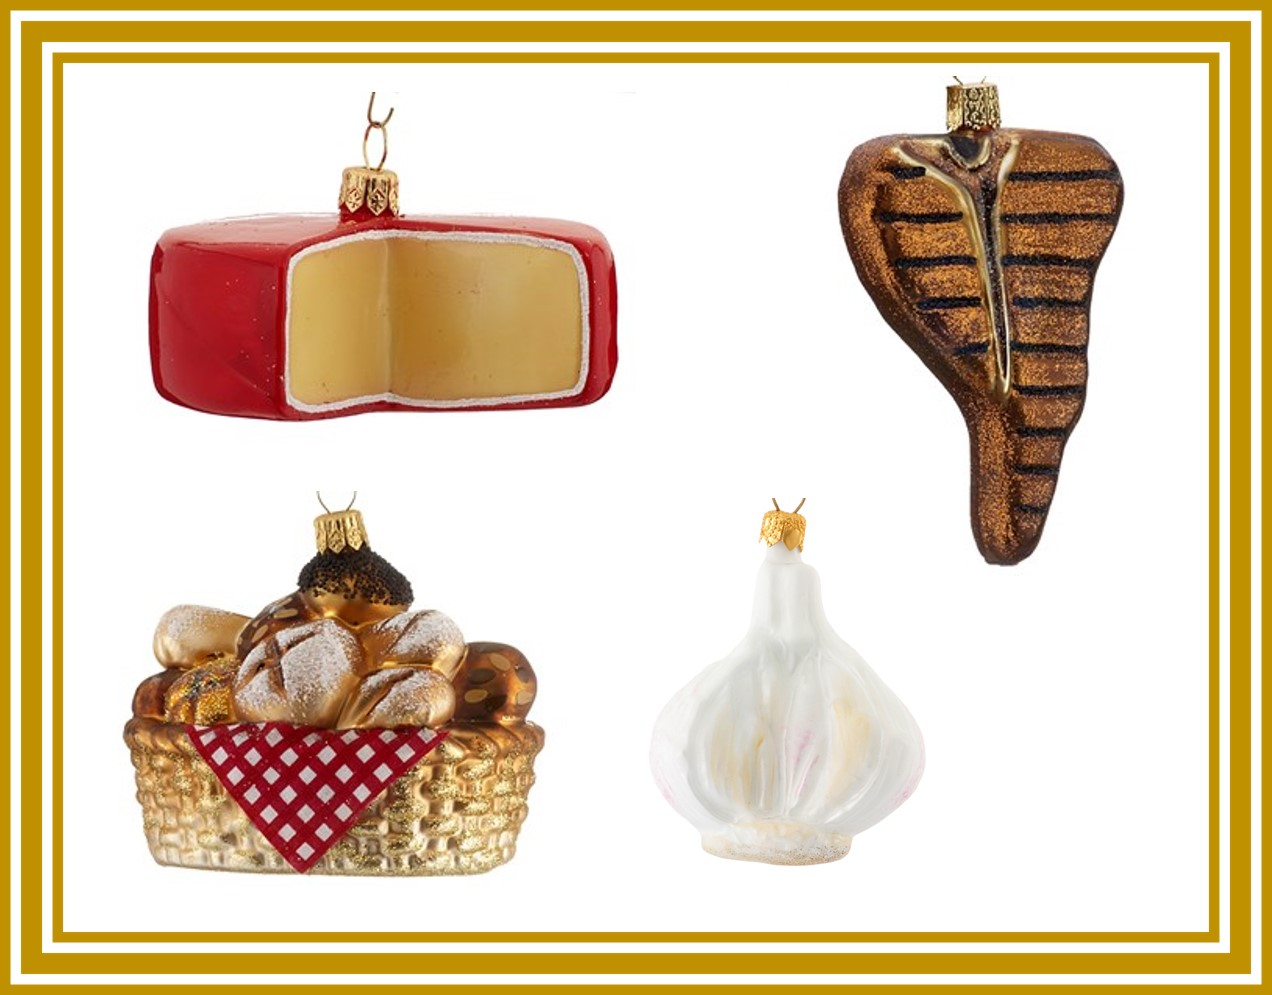 Ornaments of food that is popular for Christmas in the Netherlands including cheese, garlic, steak and bread. | OrnamentShop.com